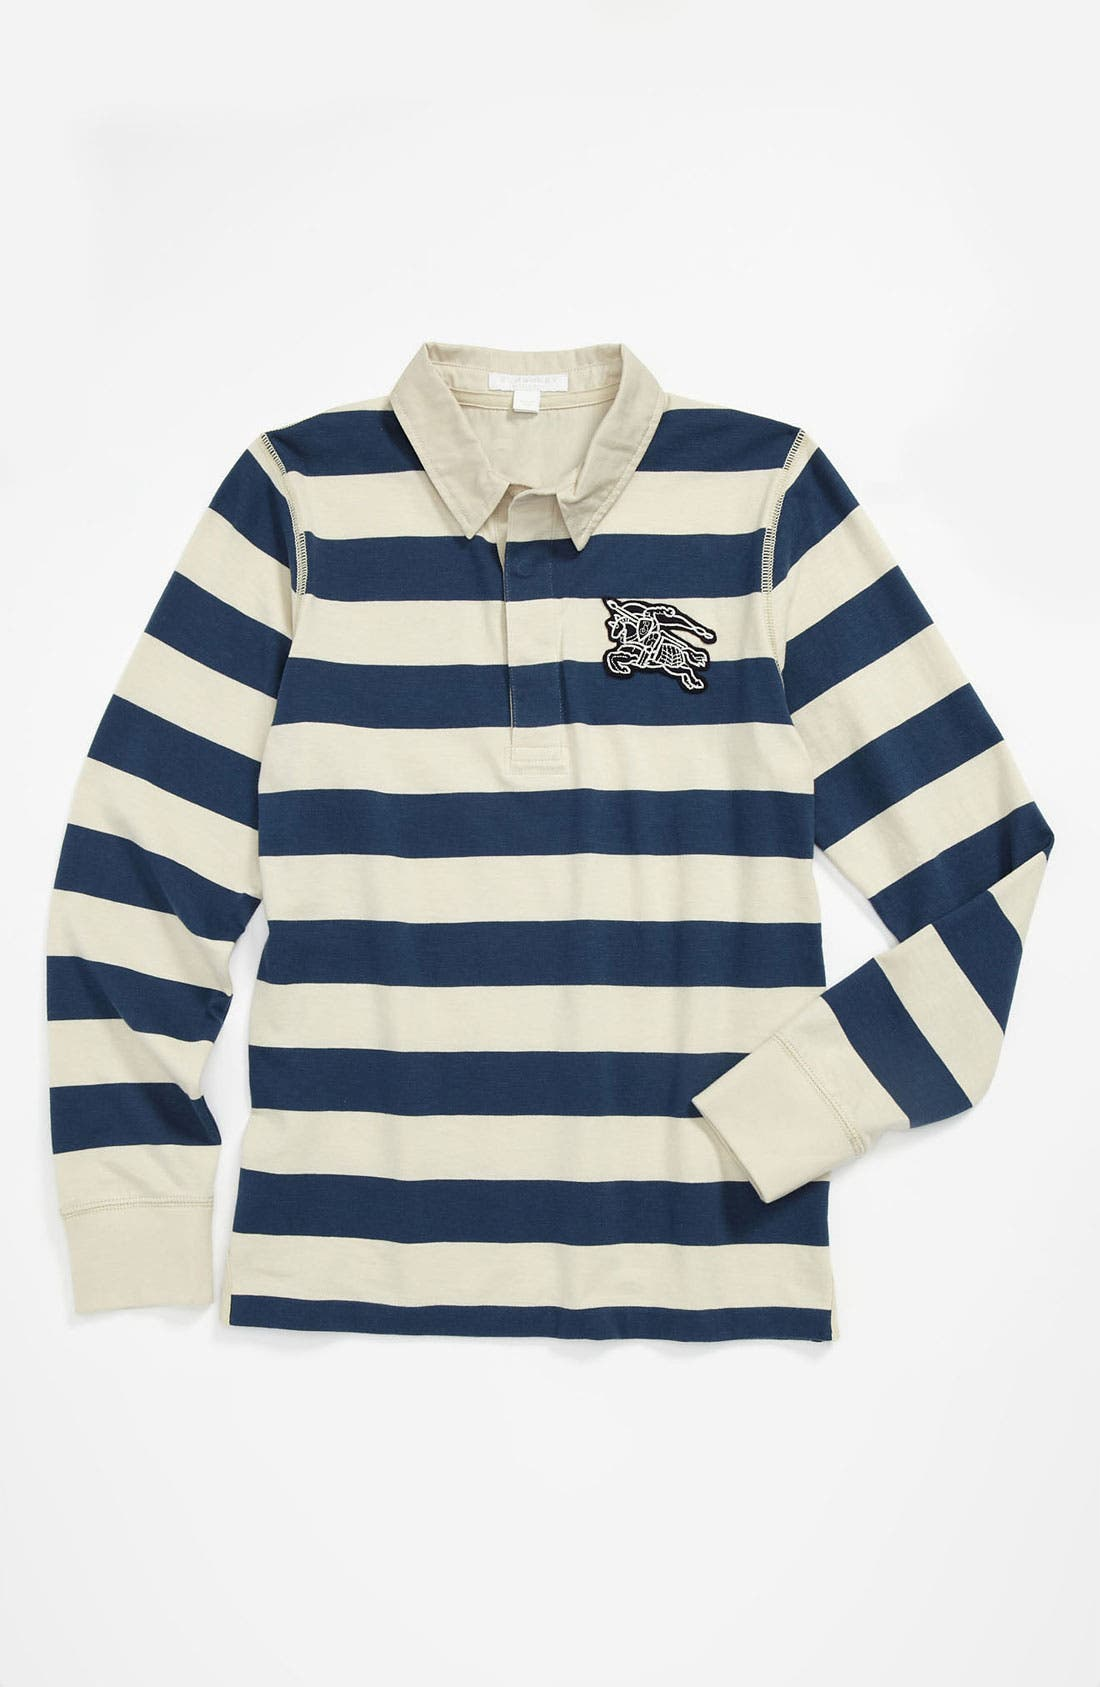 Alternate Image 1 Selected - Burberry 'Mini Beecroft' Stripe Polo Shirt (Little Boys & Big Boys)